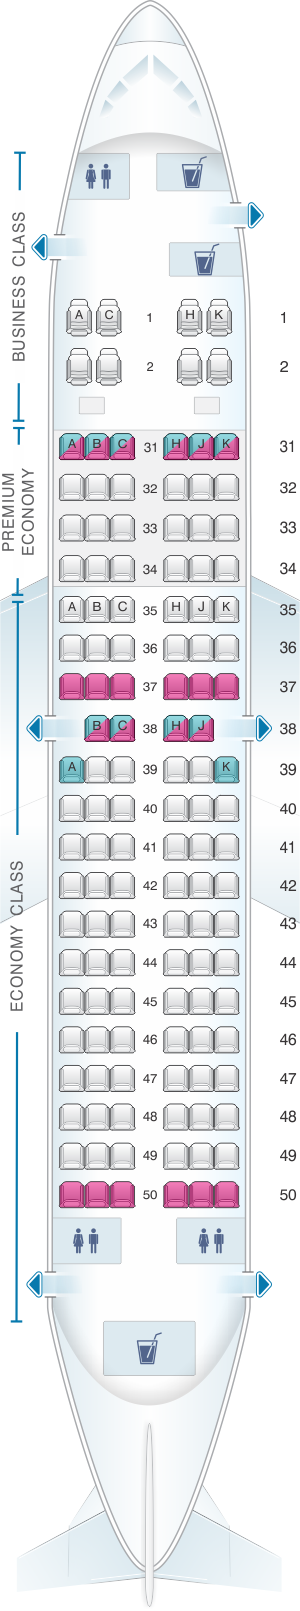 Seat map for China Southern Airlines Boeing B737 300